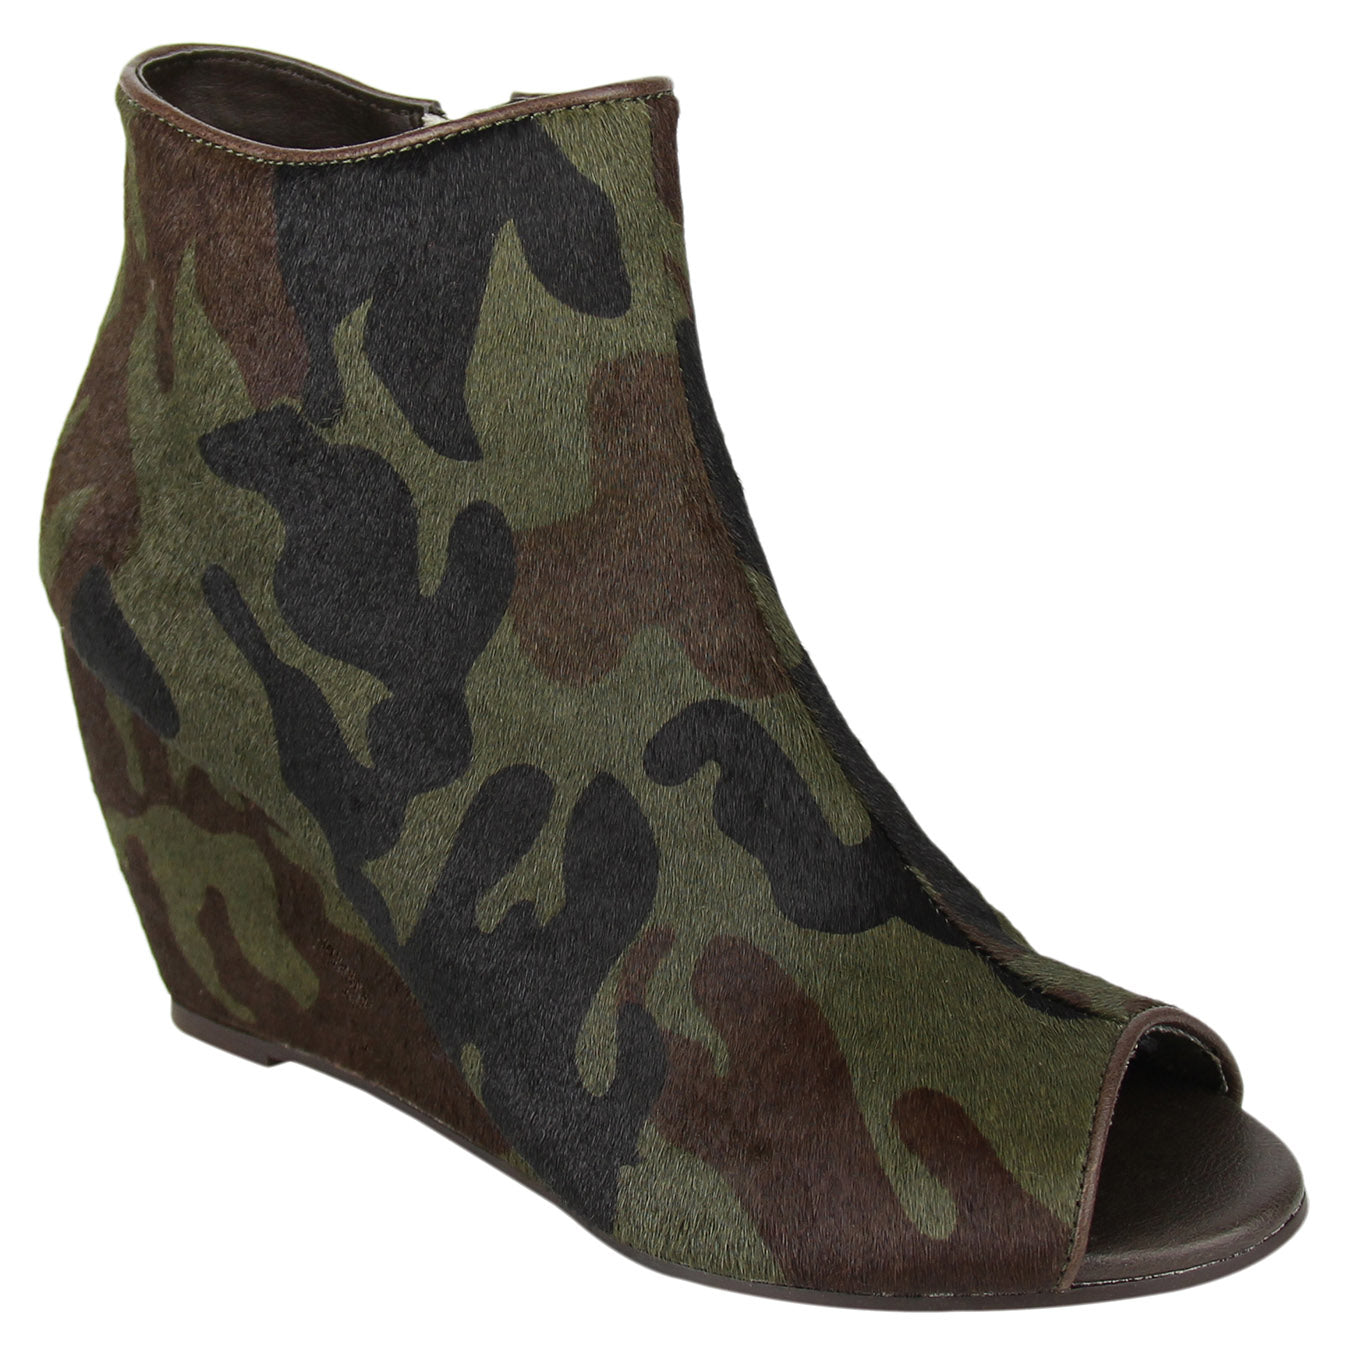 Naughty_Monkey_Camouflage_Bootie_Open-toe_Wedge